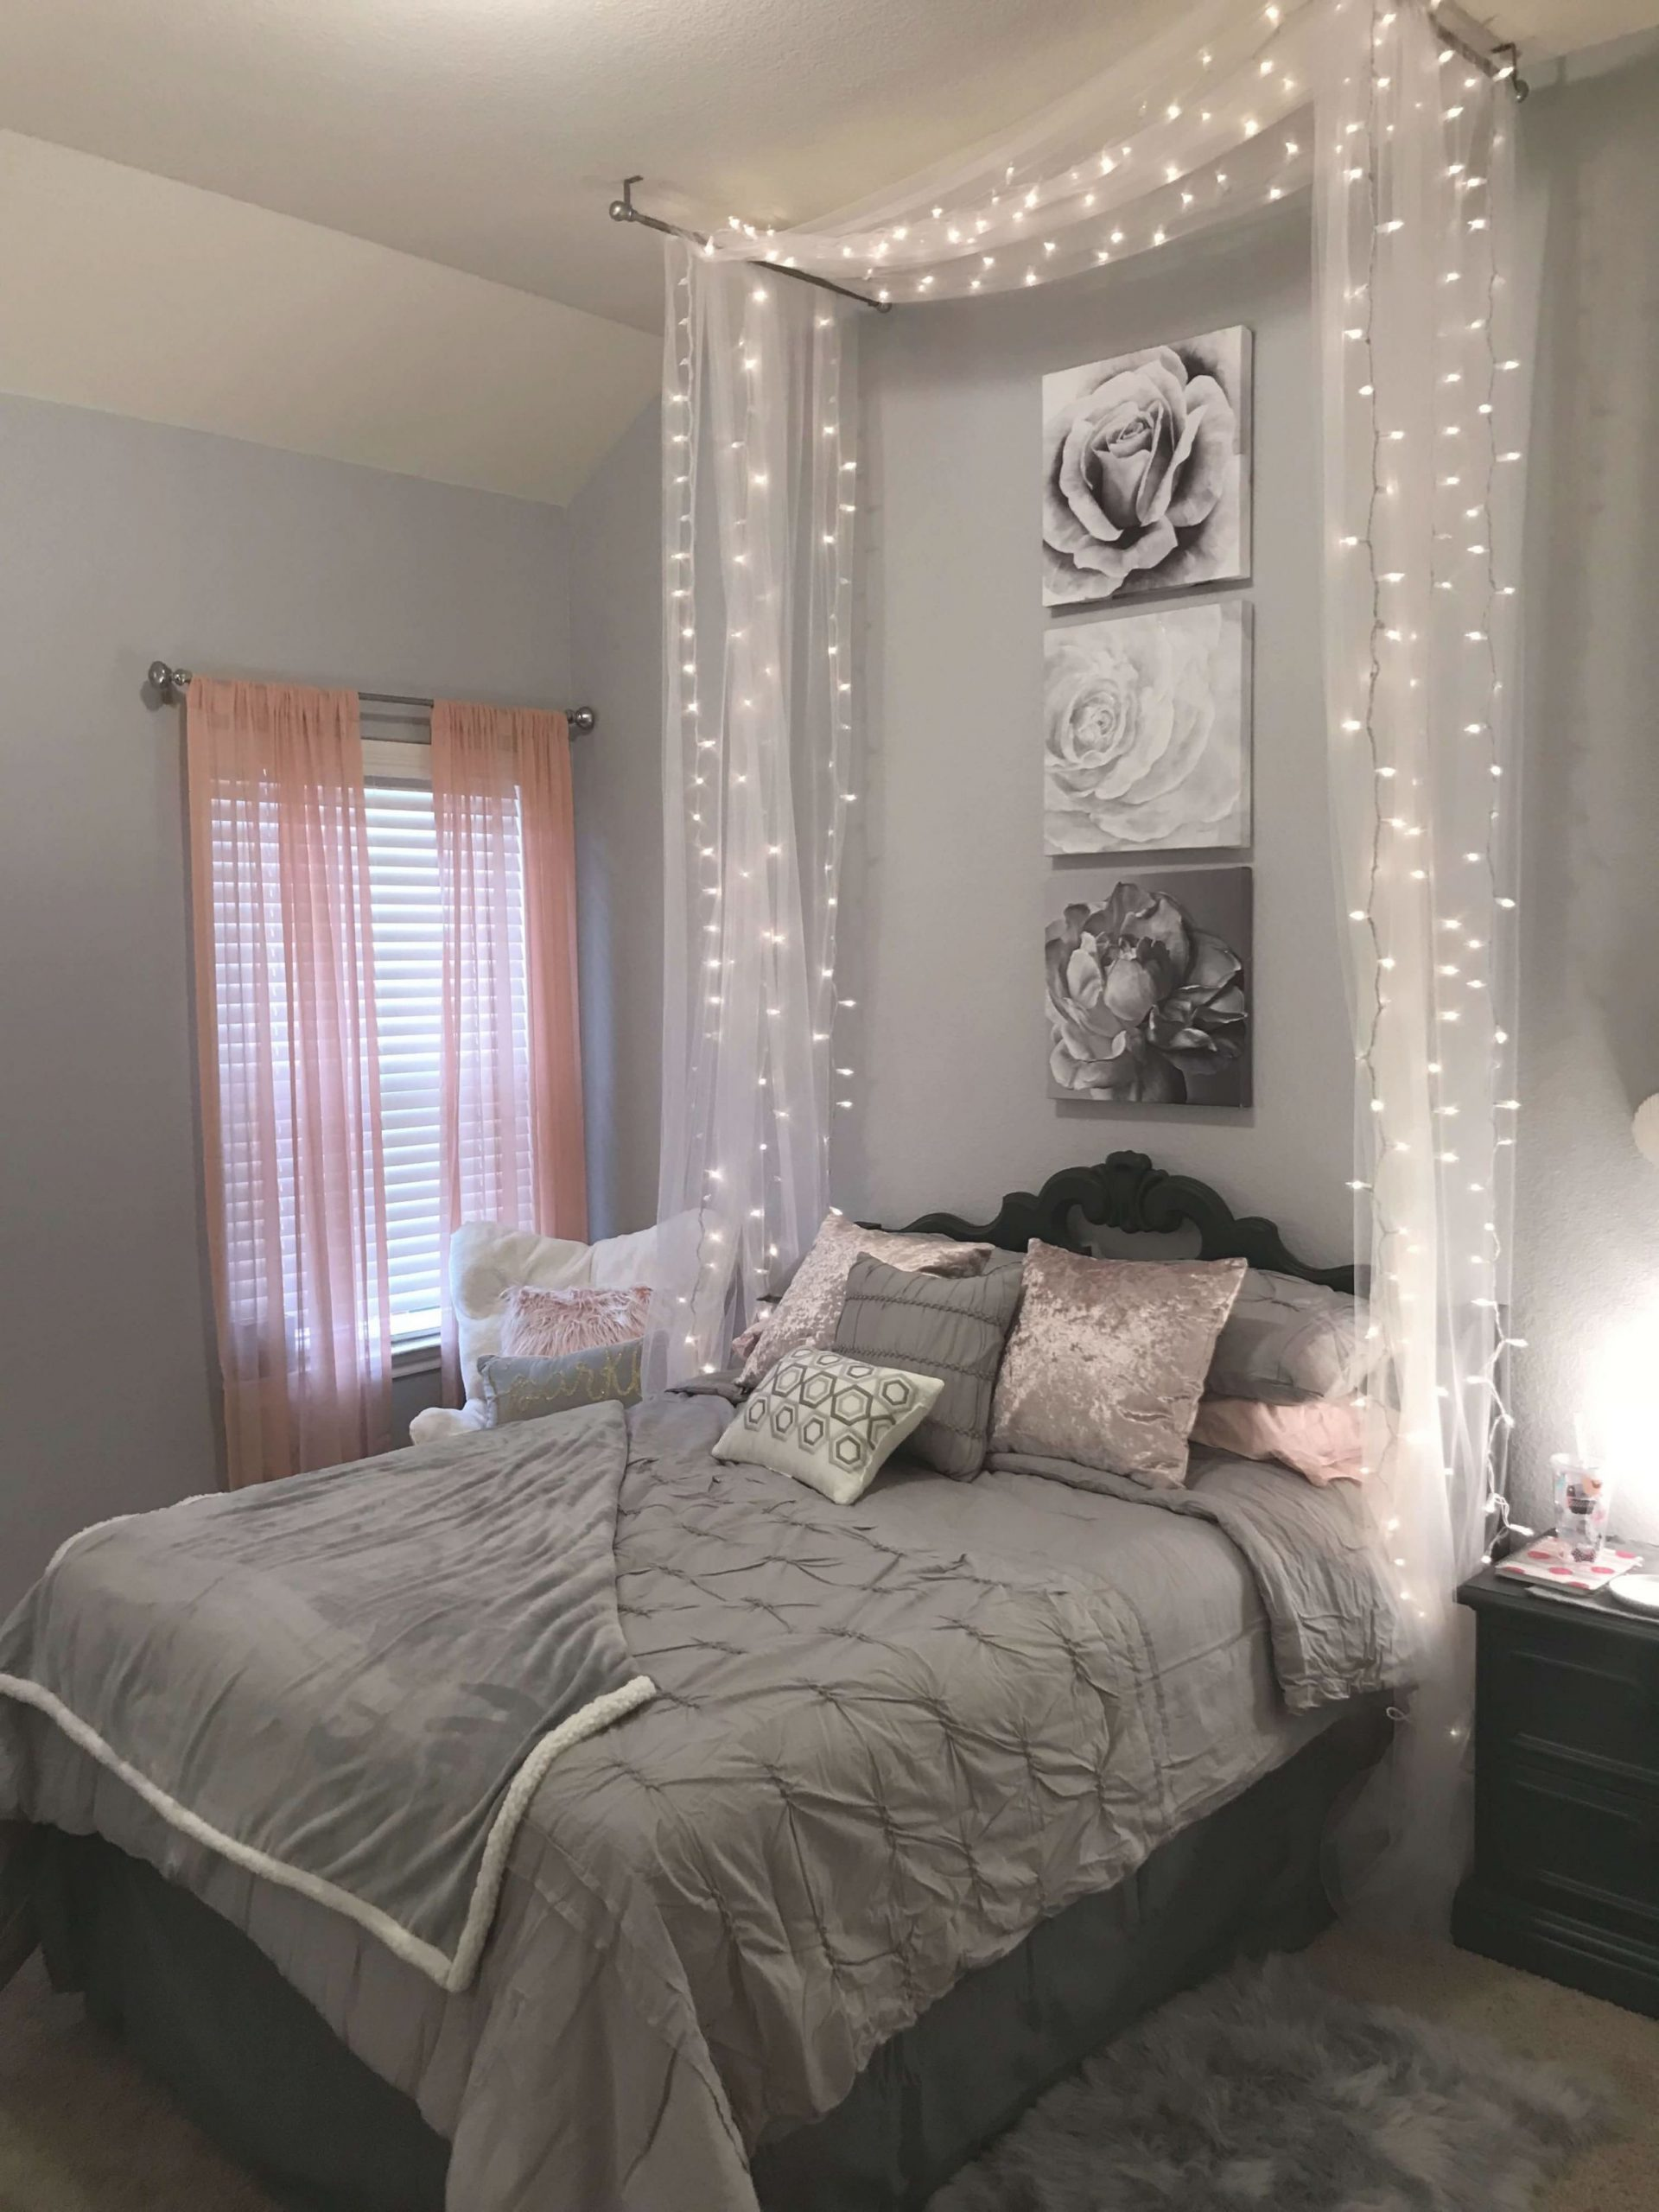 Some Of The Coolest Girly Teenage Bedroom Decor Ideas Throughout Awesome Teen Bedroom Decorating Ideas Awesome Decors